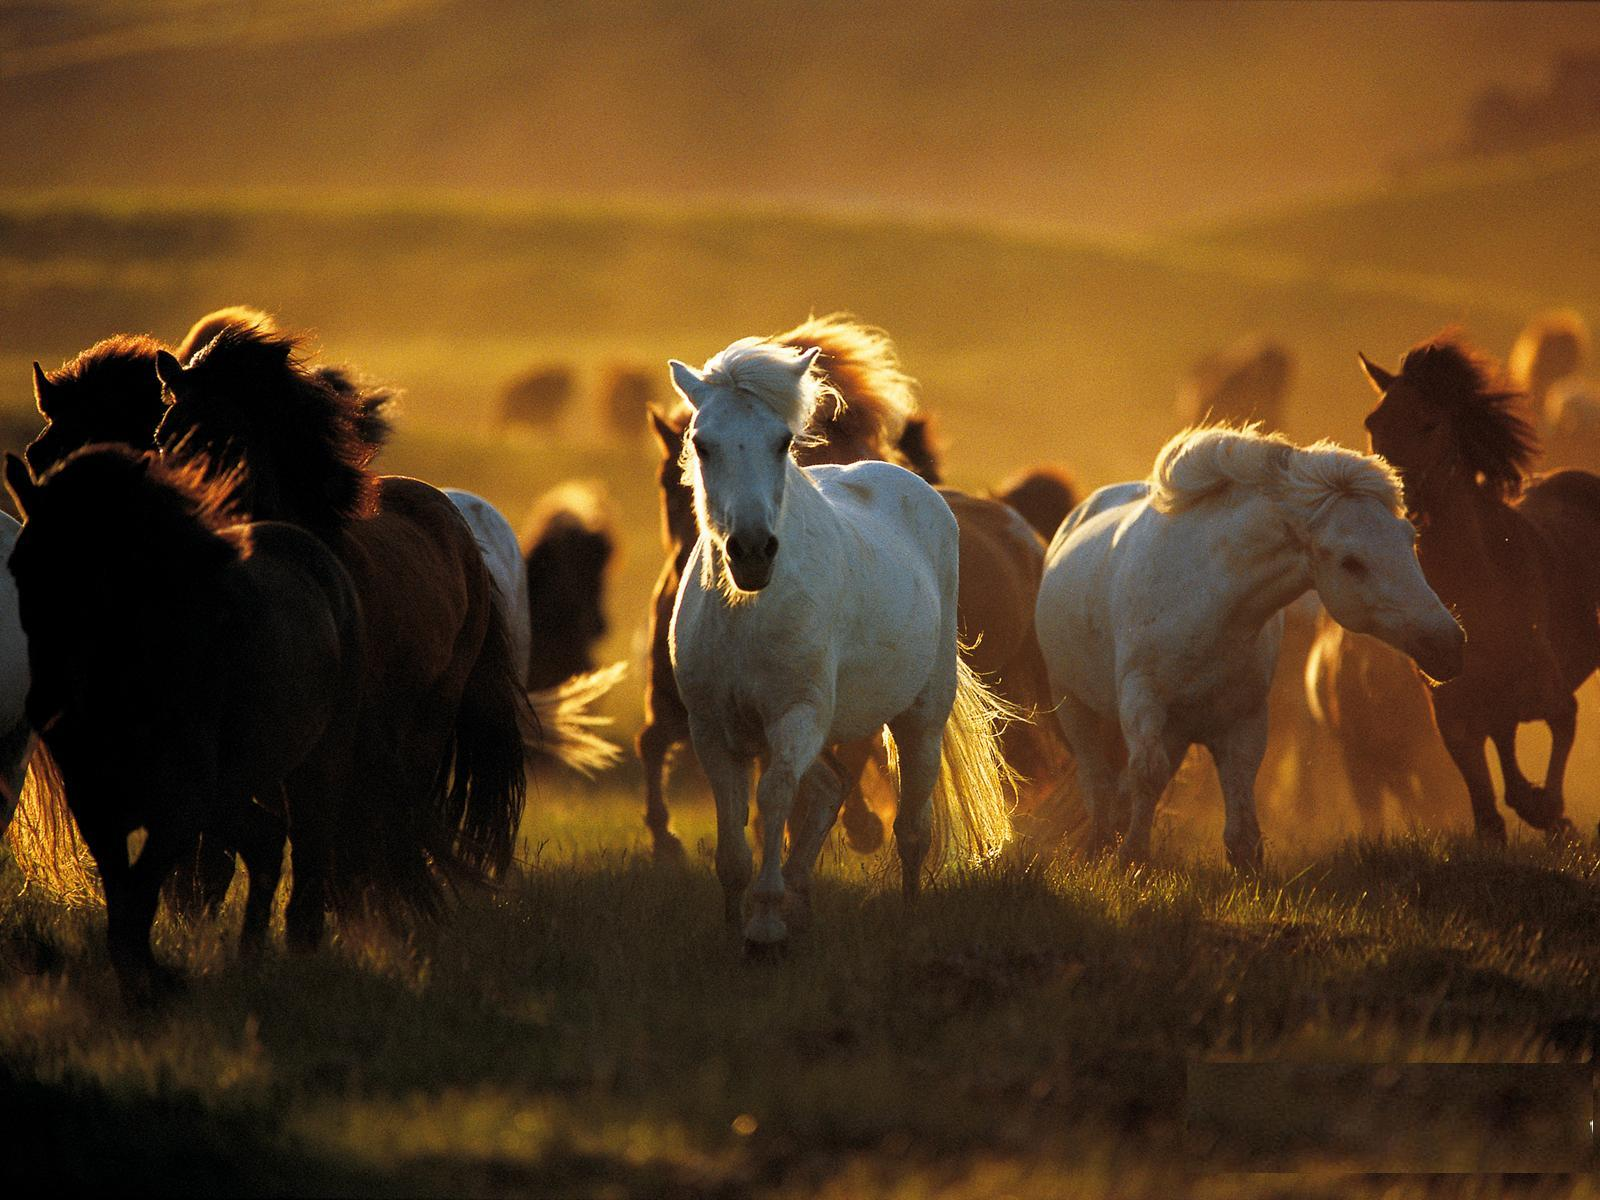 Most Inspiring   Wallpaper Horse Desert - wild+horses+wallpapers  Snapshot_806913.JPG